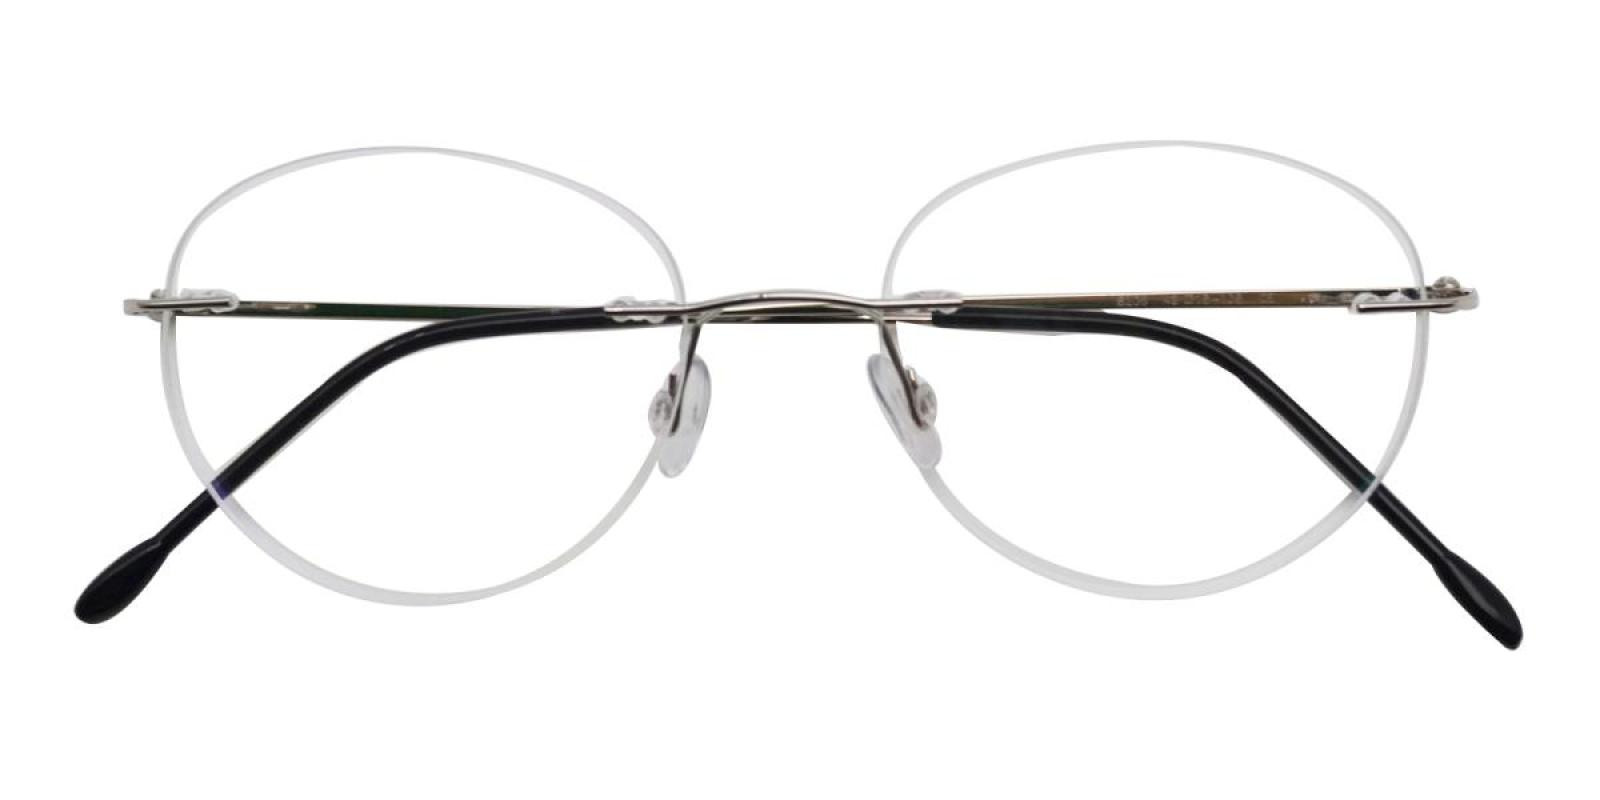 Ditto-Silver-Varieties-Metal-Eyeglasses-detail